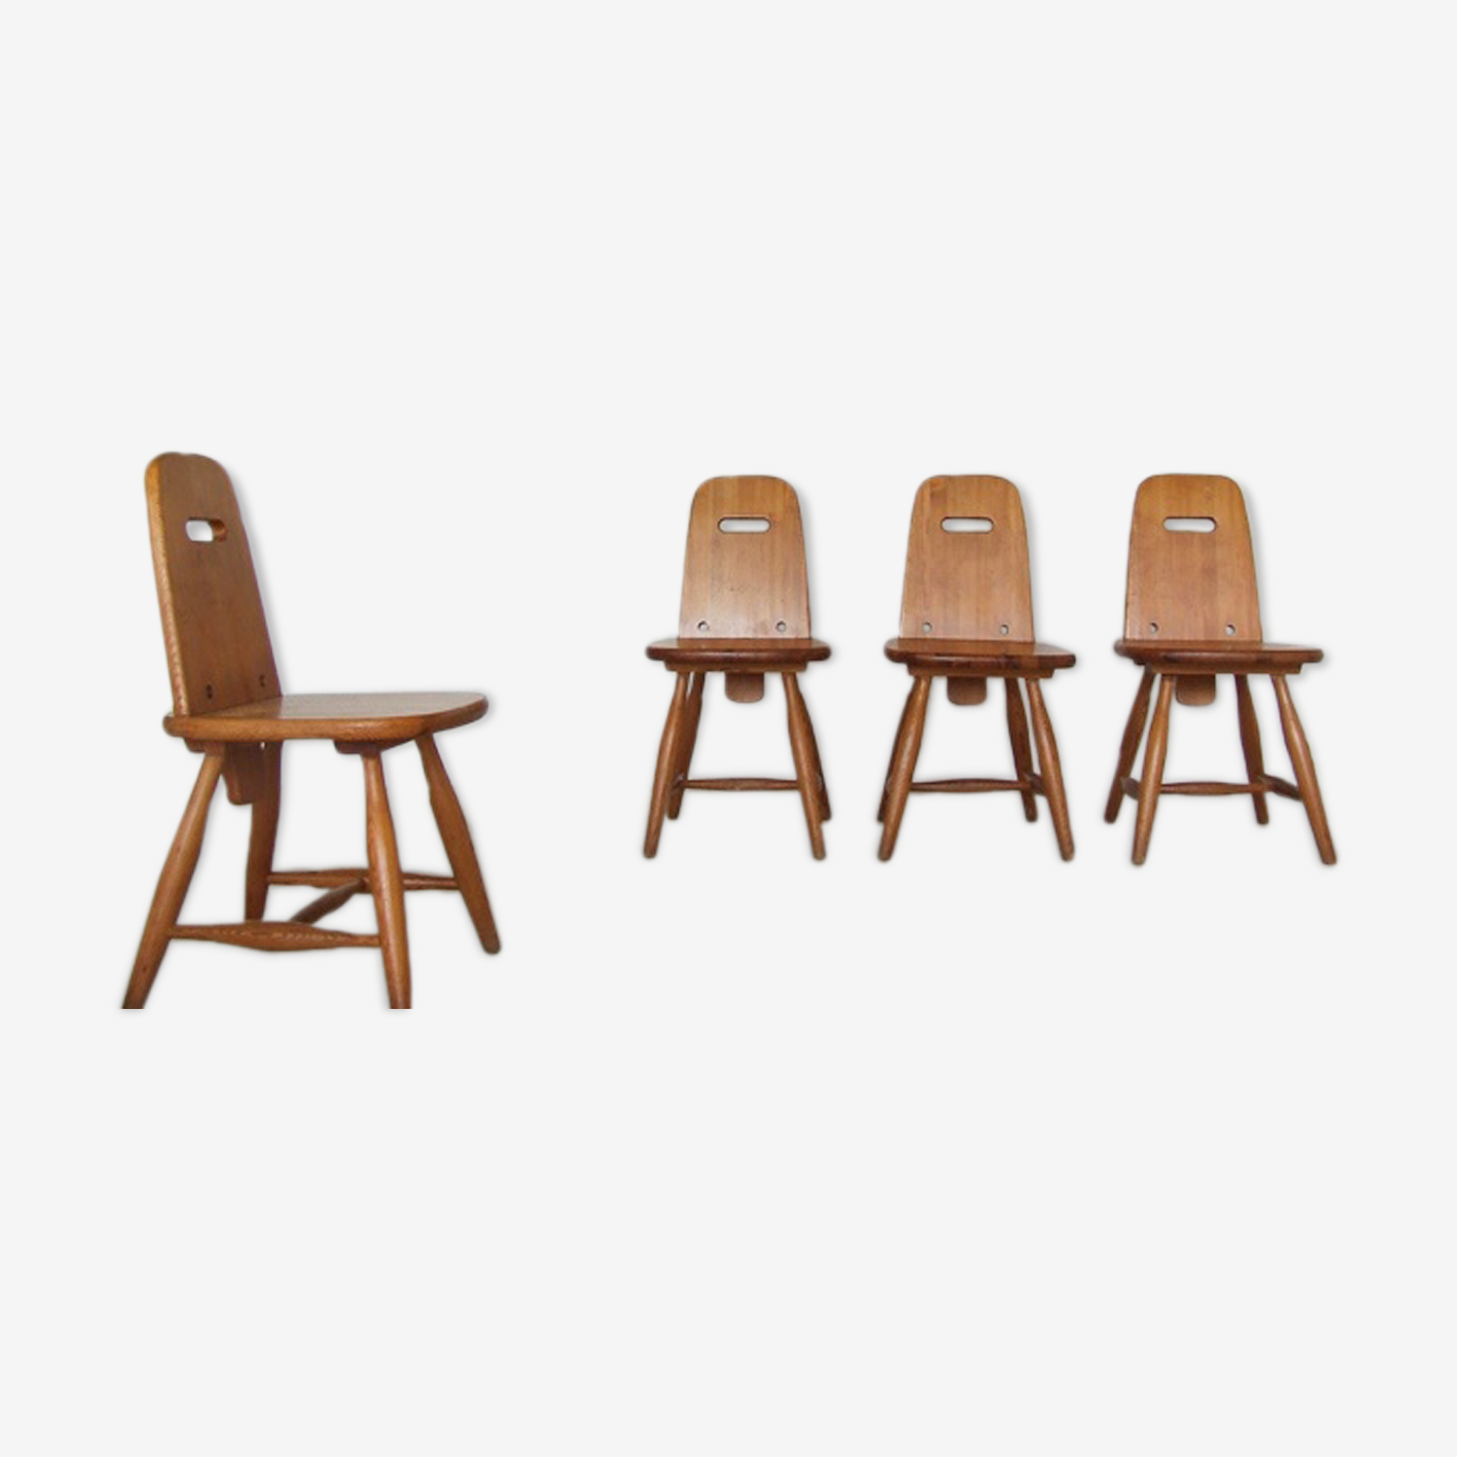 Set of 4 Pirtti lounge chairs by Eero Aarnio for Laukaan Puu